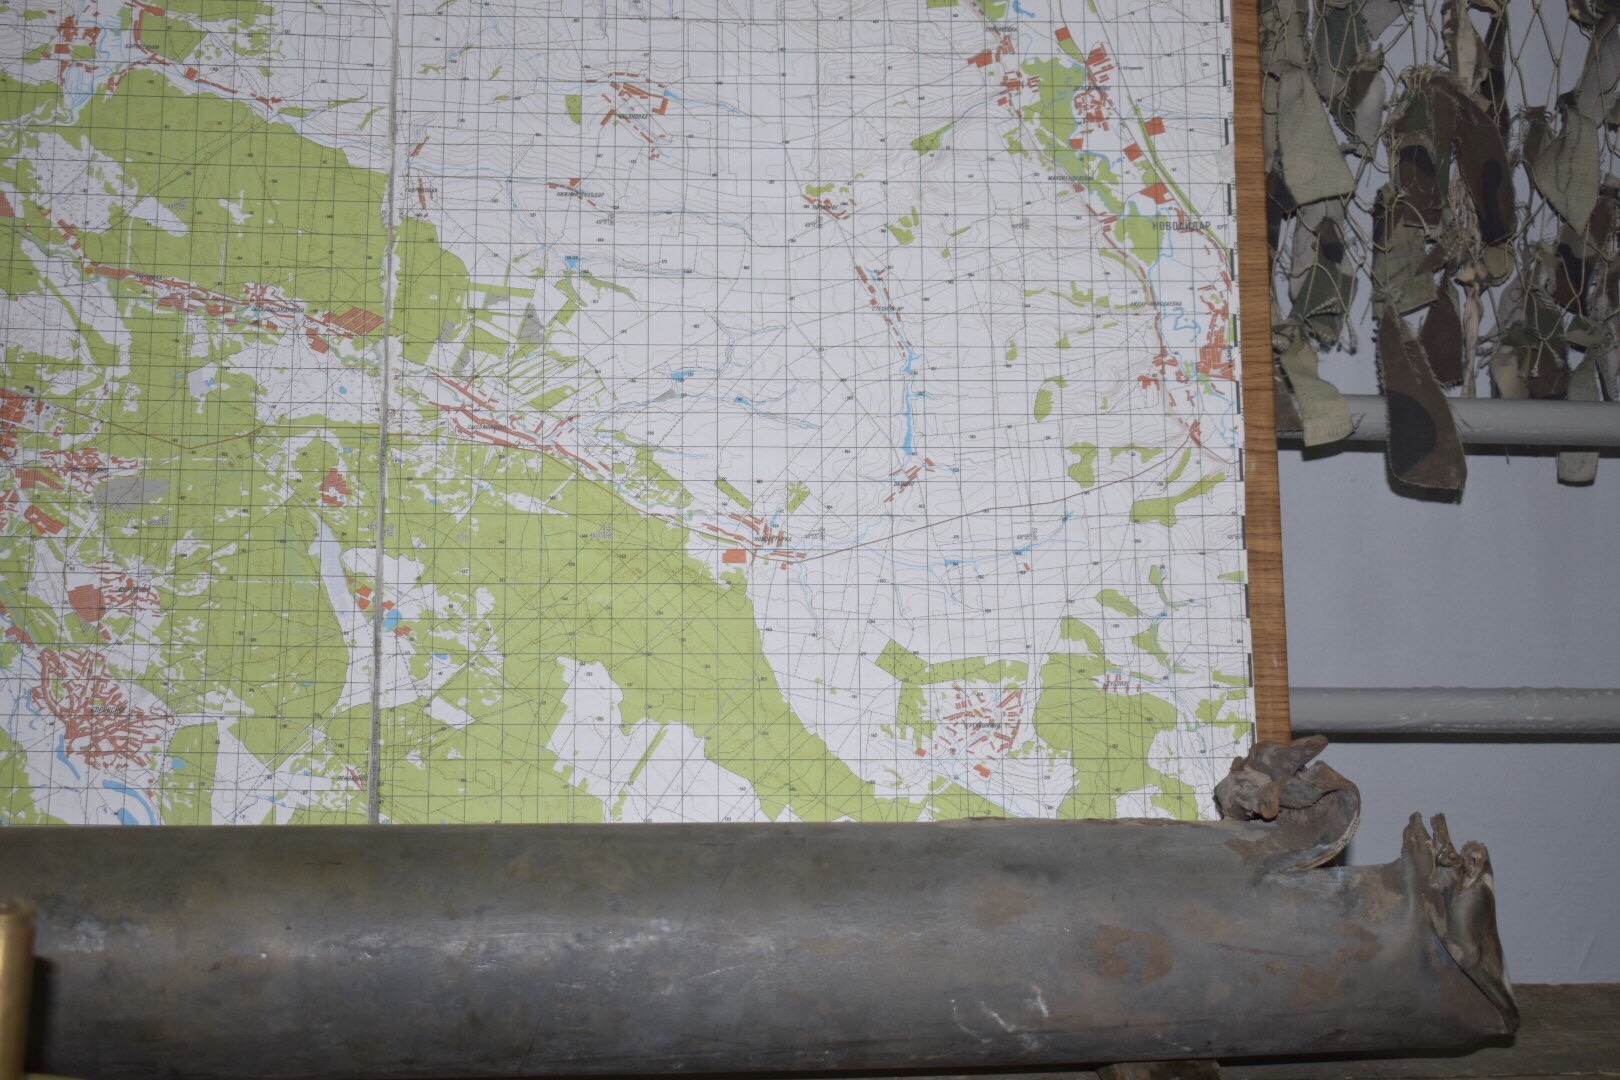 Shrapnel from the Russia-Ukraine conflict and Map, Lysychansk Regional Museum